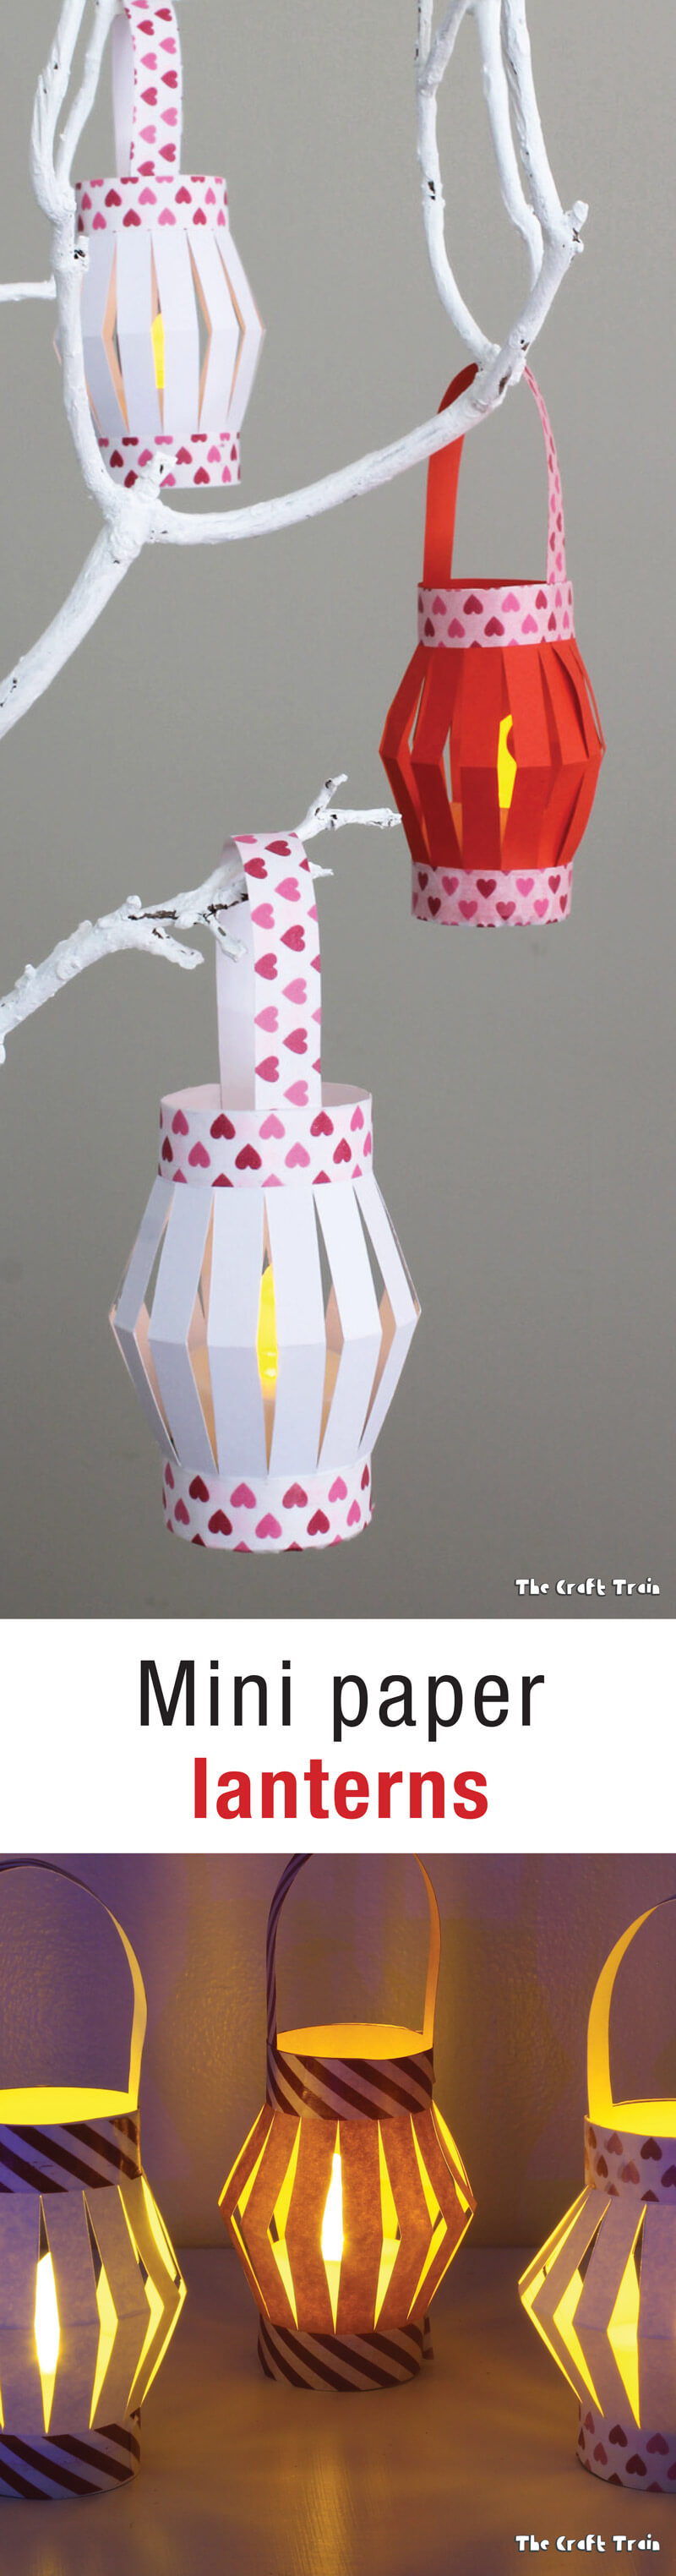 Mini paper lanterns with printable template. These are great for cutting practice and fine motor skills for kids.